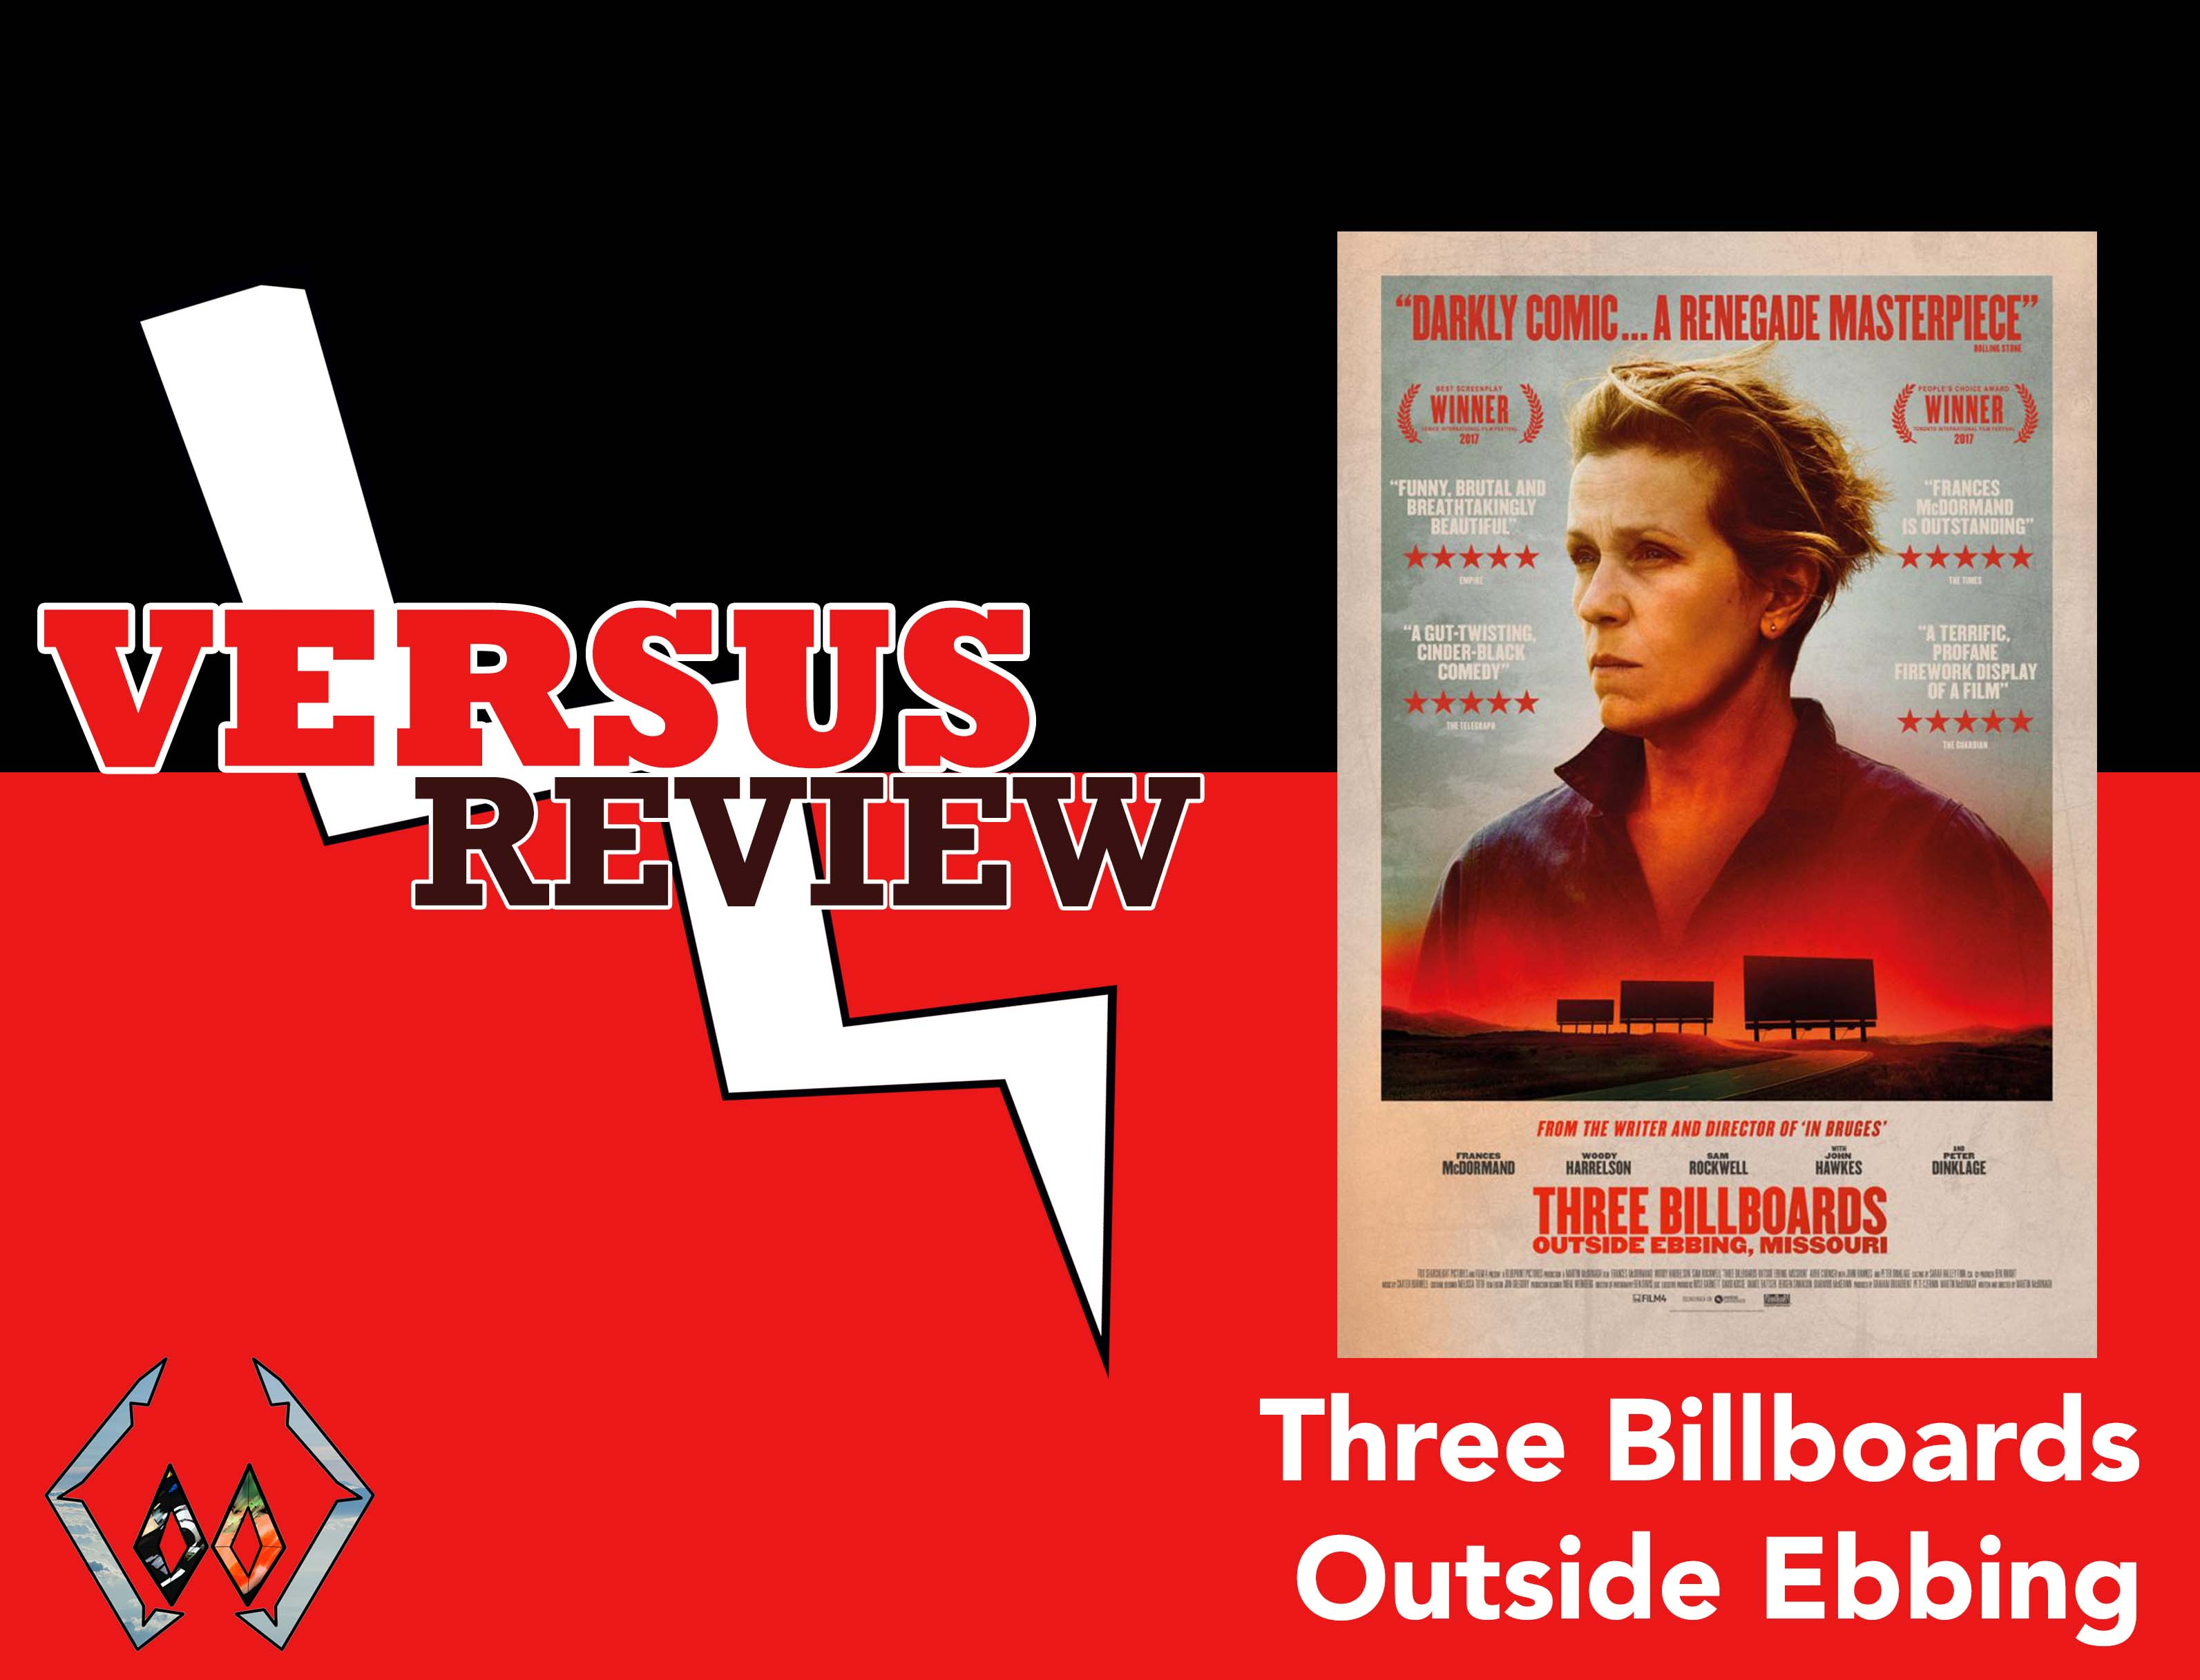 Three Billboards Outside Ebbing, Missouri film review post image